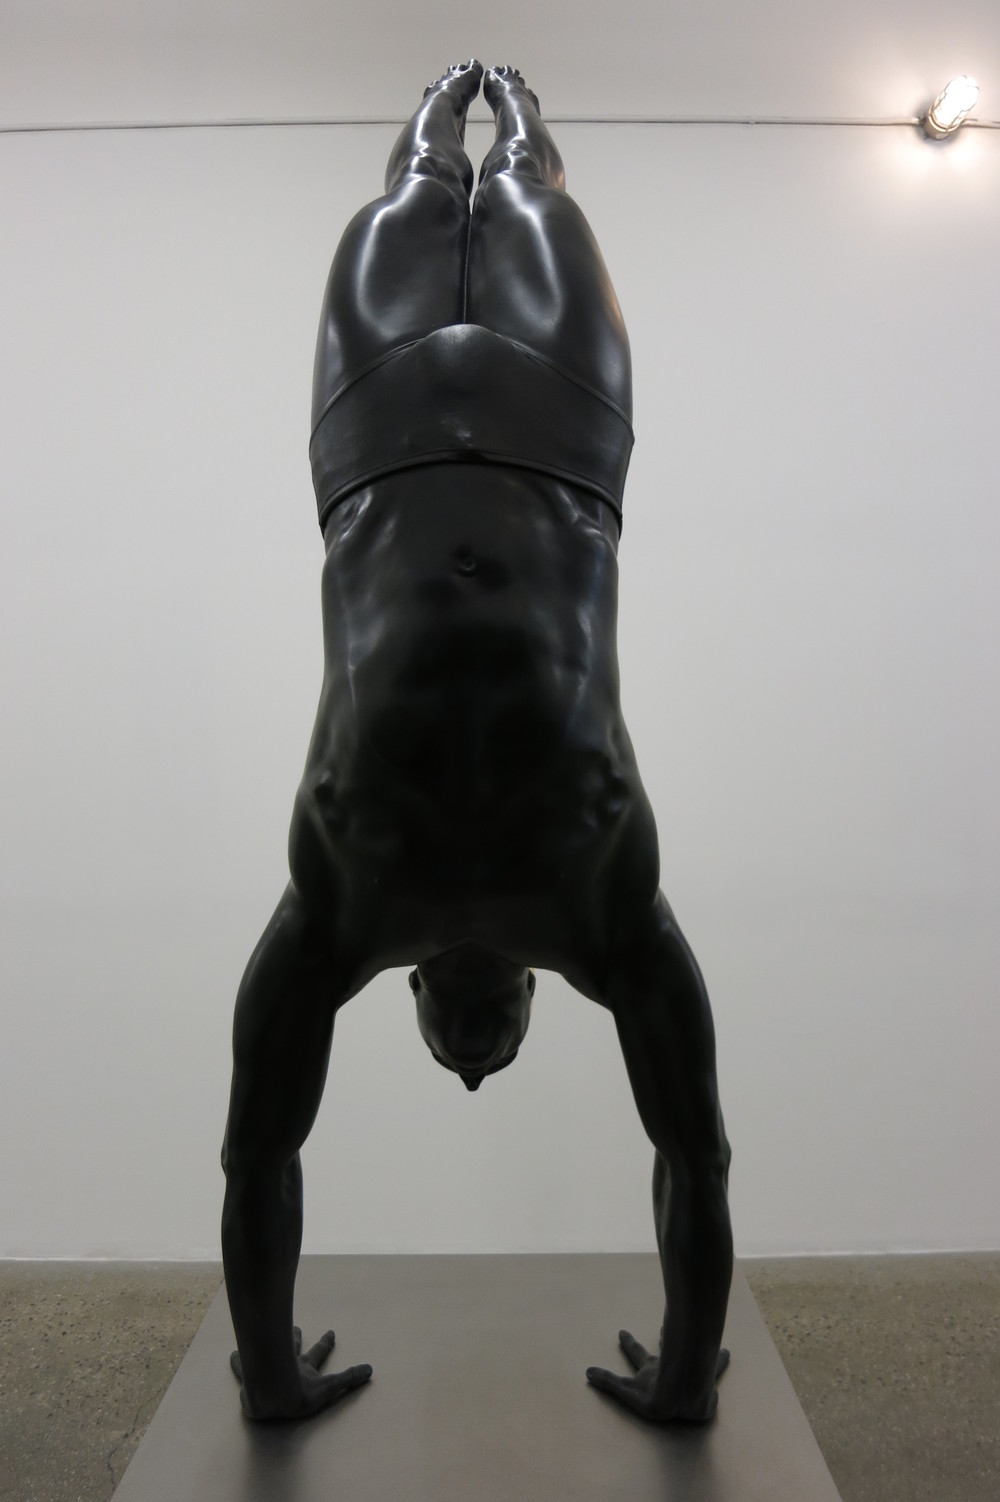 Diver, 2011. Oil on Bronze. 77 x 25 x 11 inches.